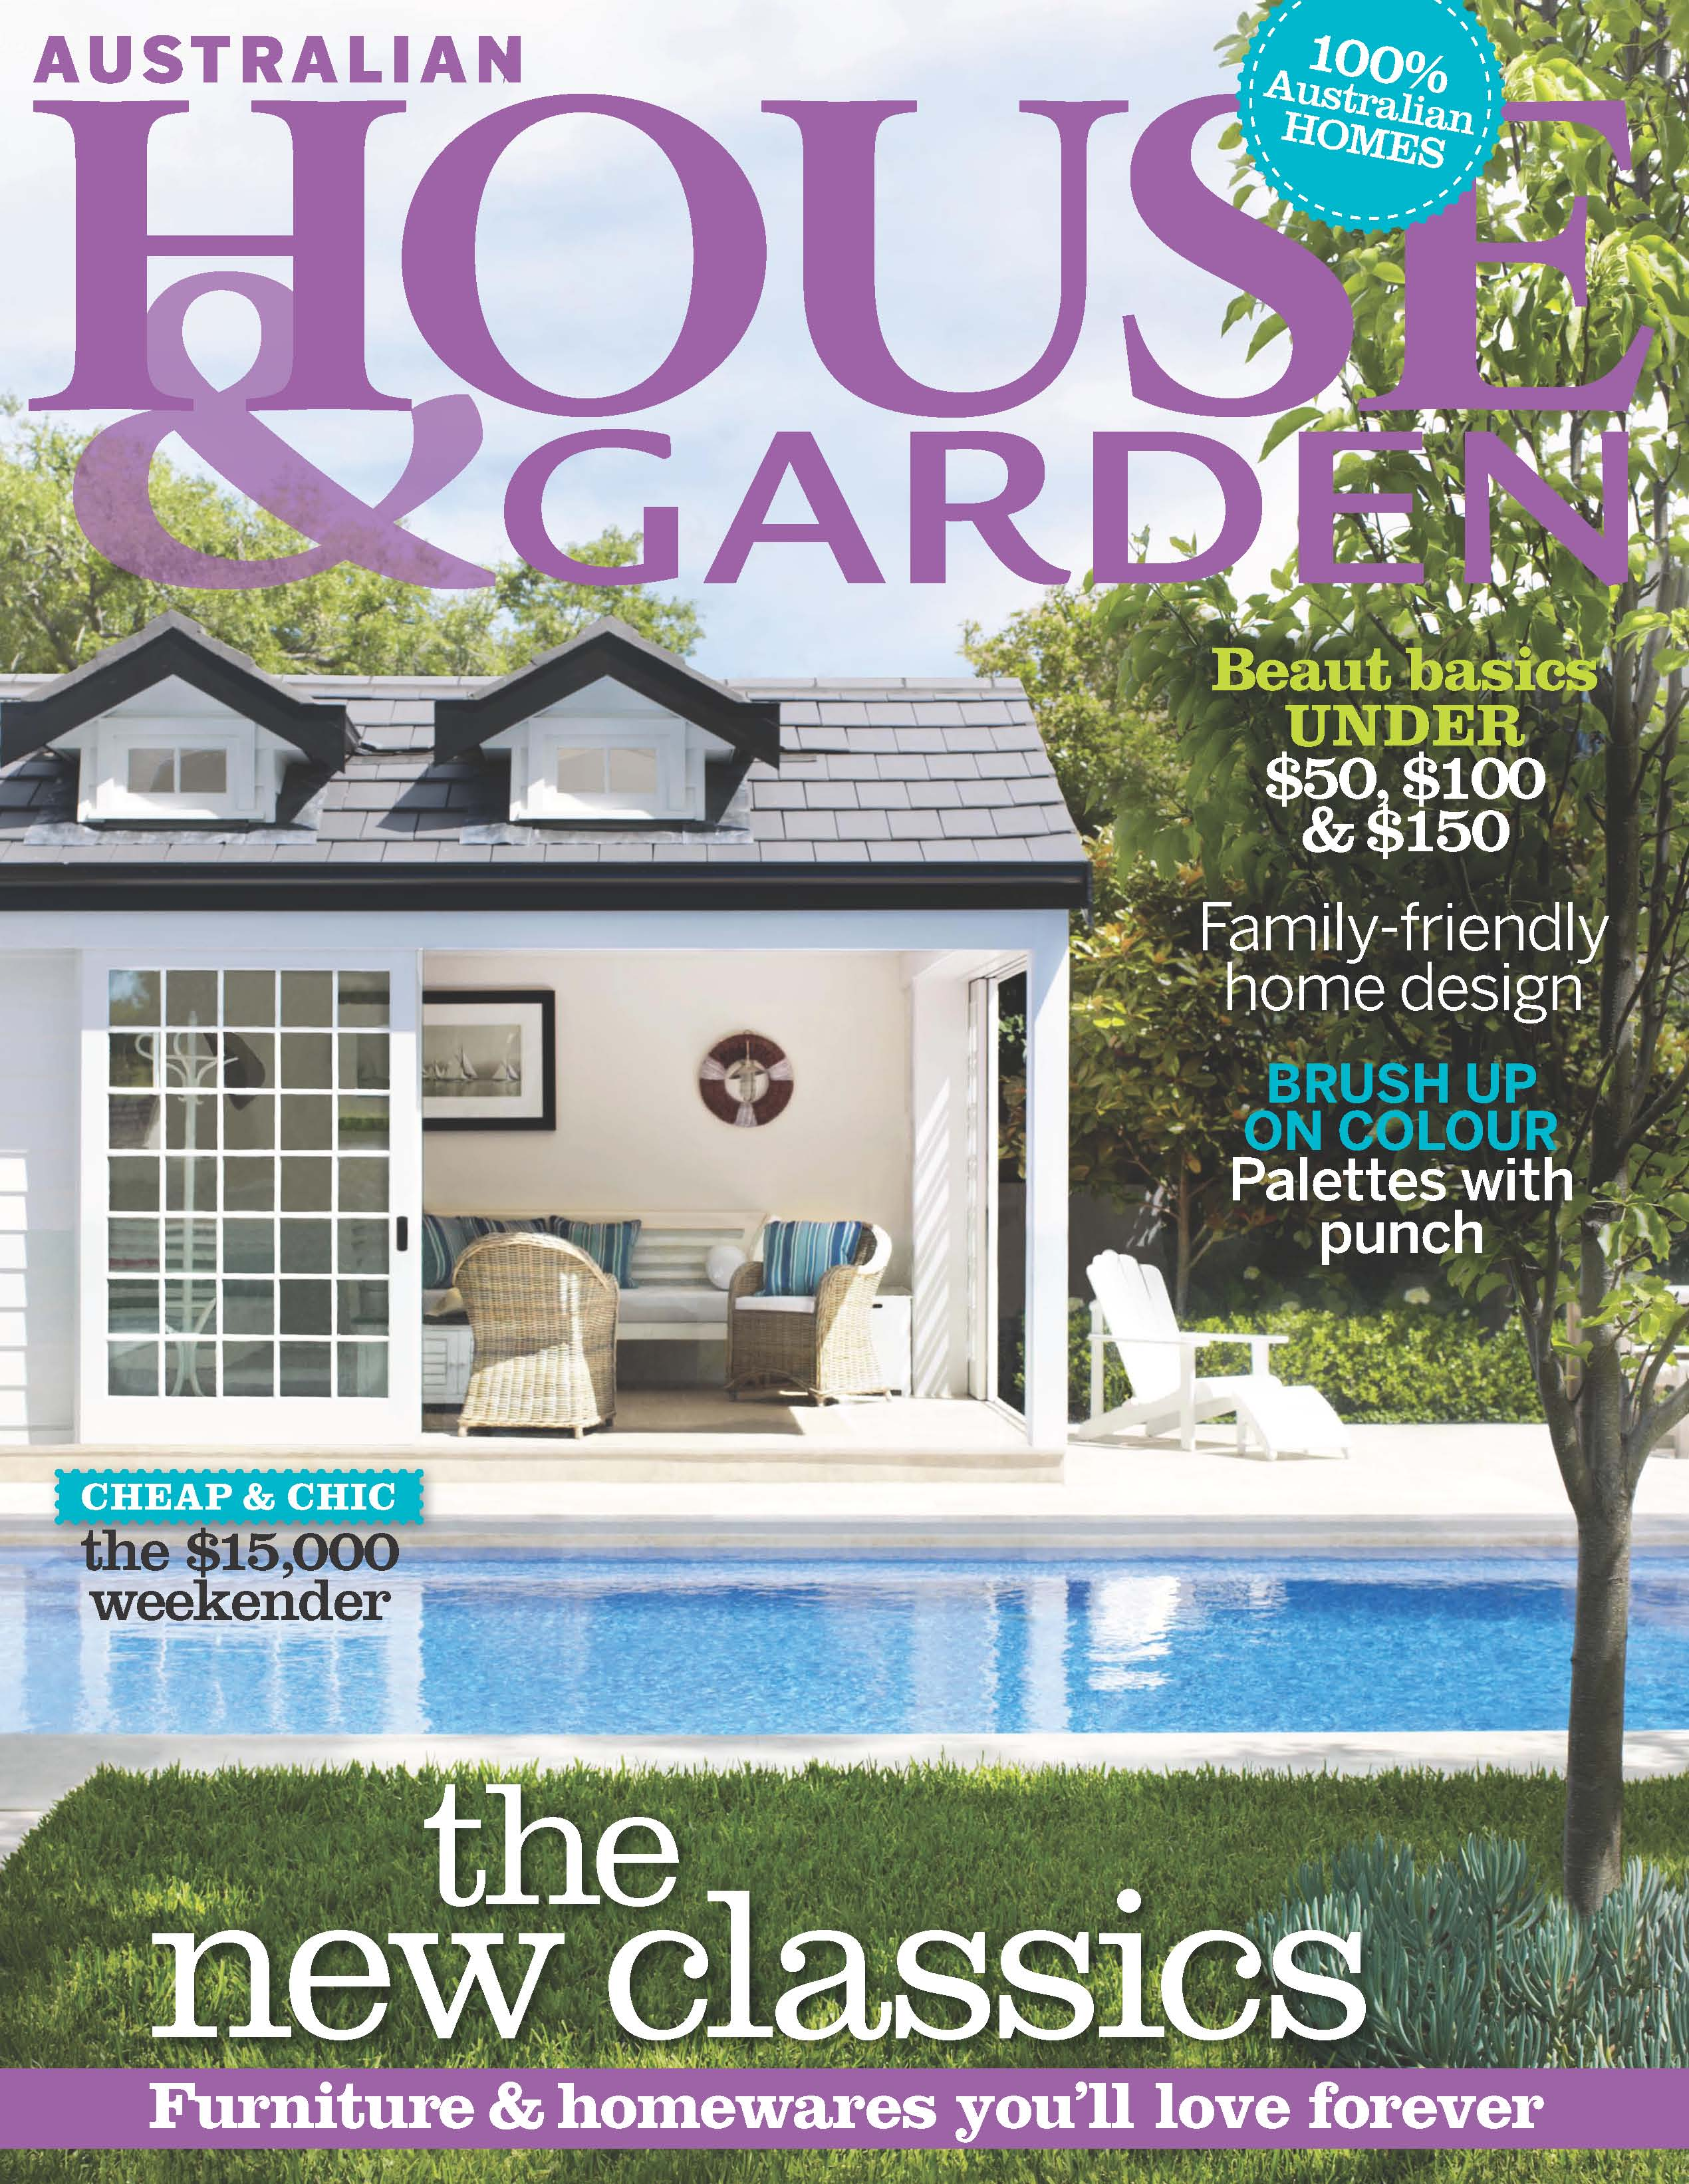 a-h-g-feb-2011-cover.jpg